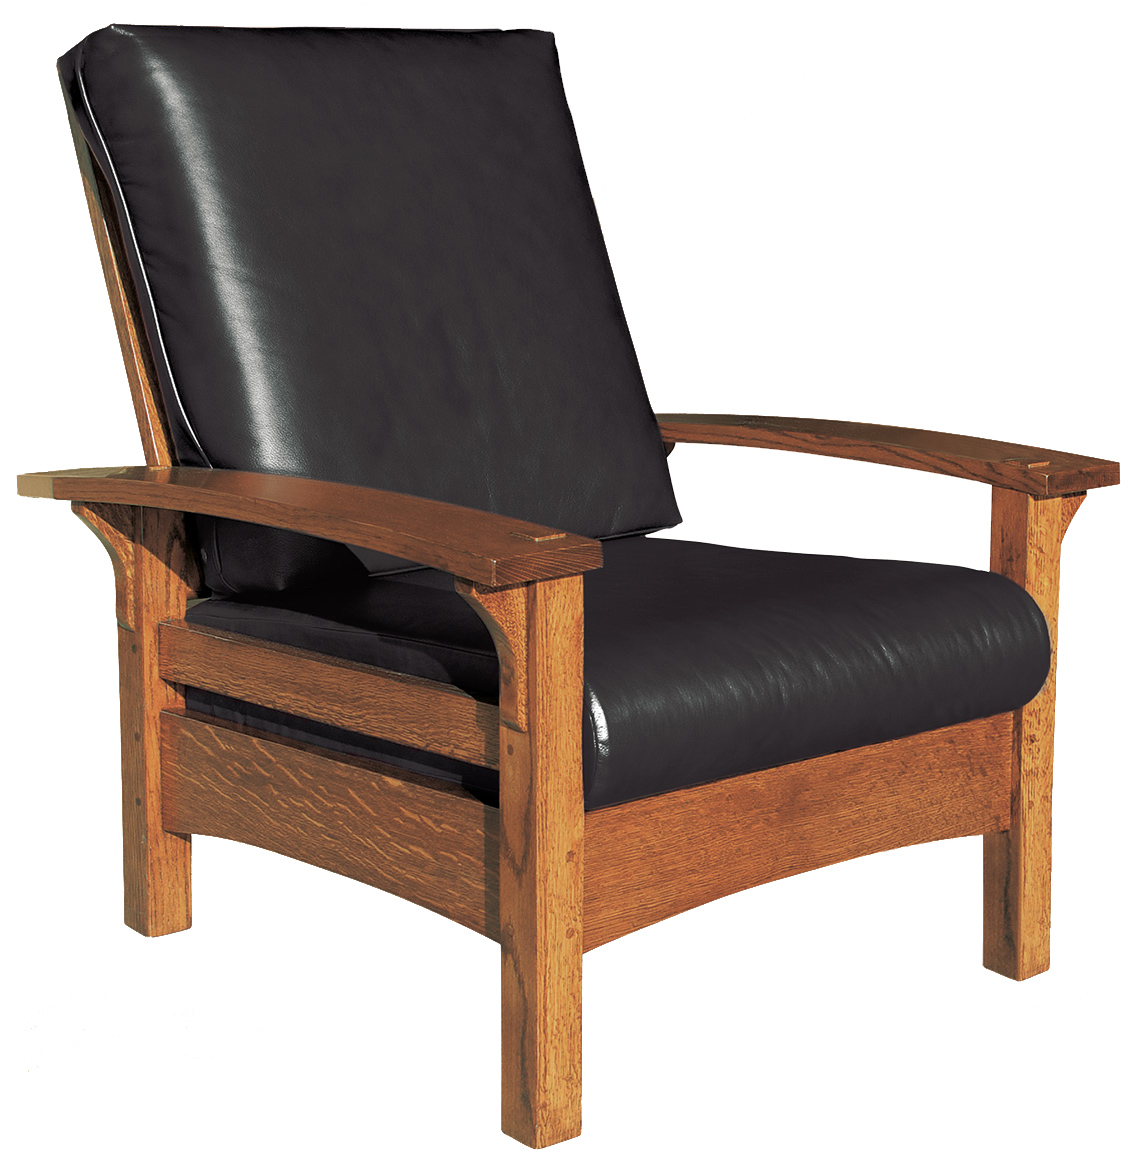 mission recliner chair plans revolving in lucknow durango morris wood